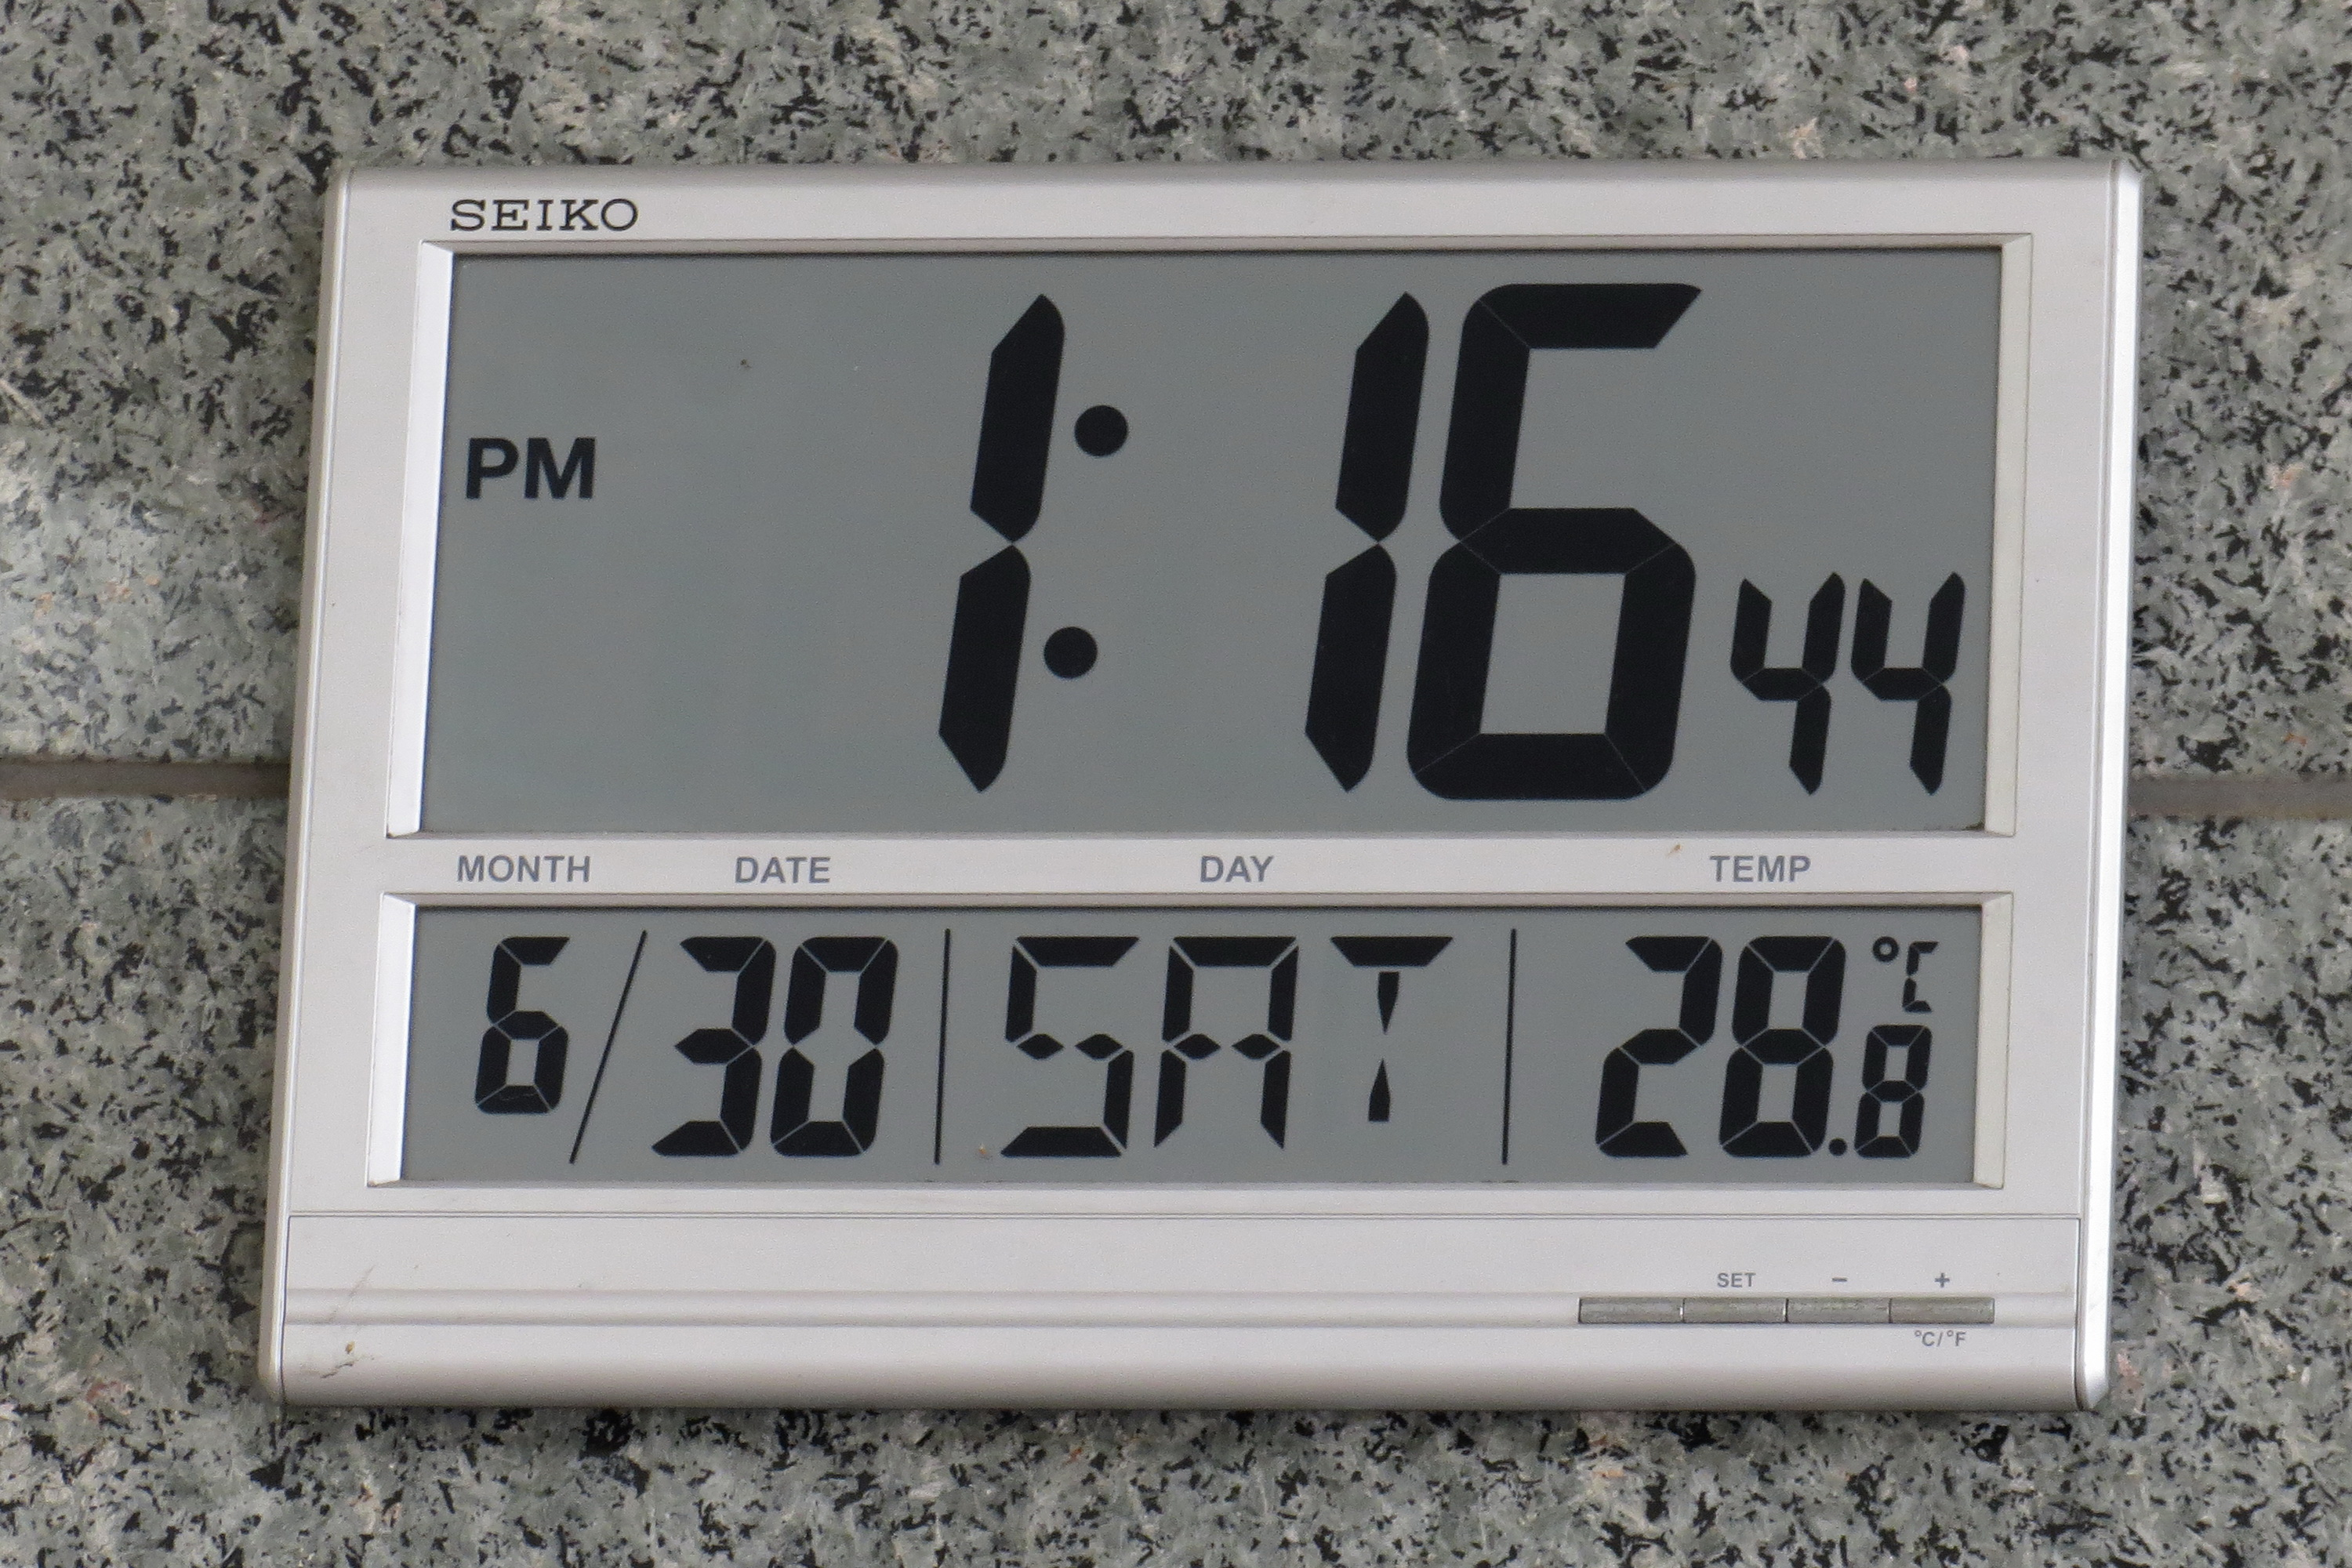 Fileled Digital Wall Clock Seikog Wikimedia Commons